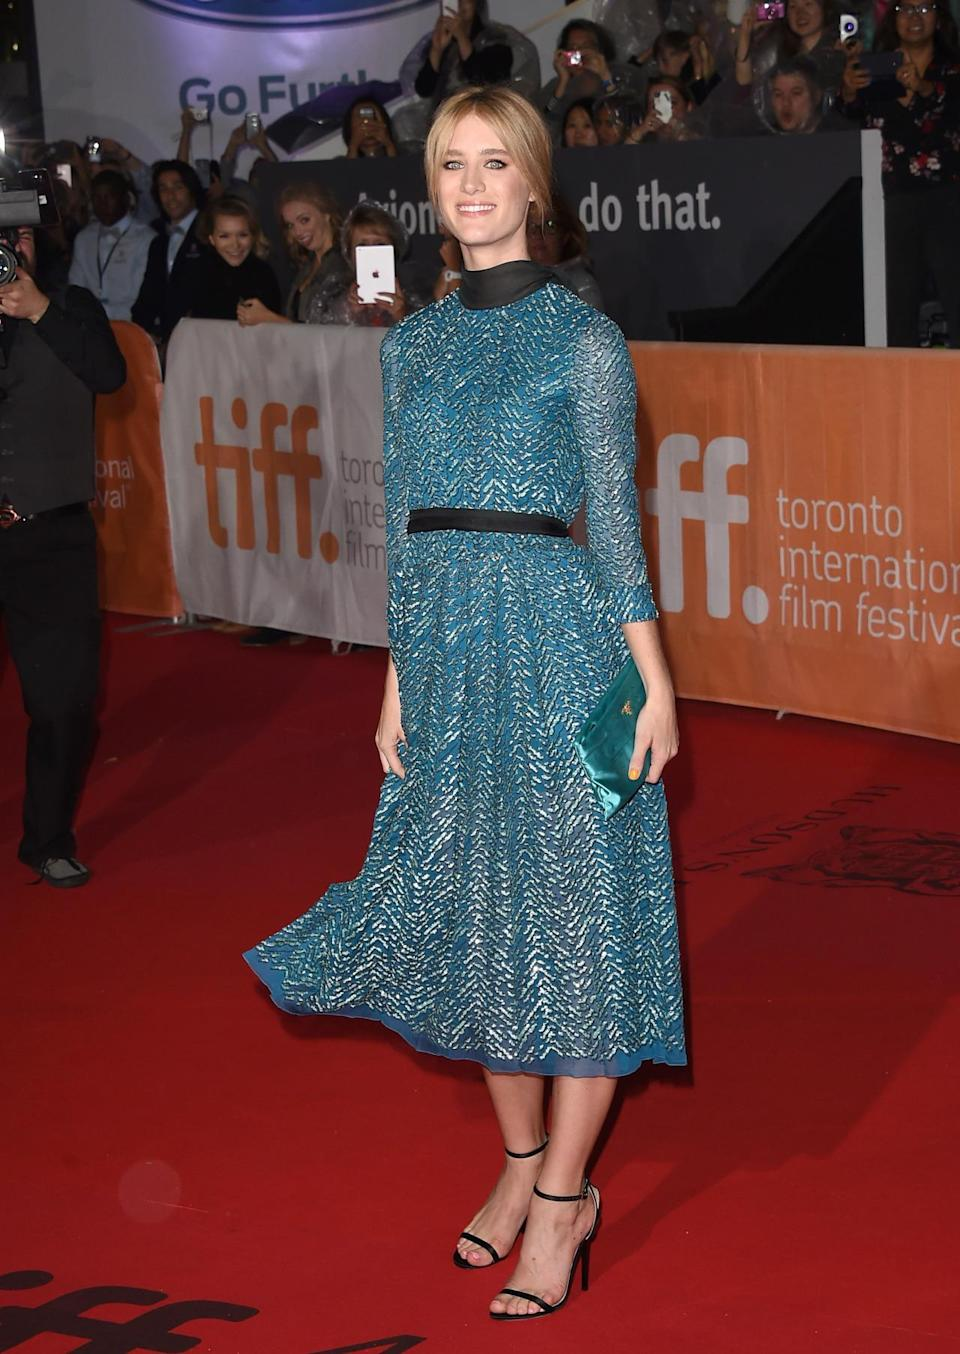 """<p>Mackenzie Davis typically plays characters with more tomboyish style, but on the red carpet at """"The Martian"""" premiere during the Toronto International Film Festival, she brought the flair and fun in a sea blue dress covered in beads arranged in a geometric pattern. </p>"""